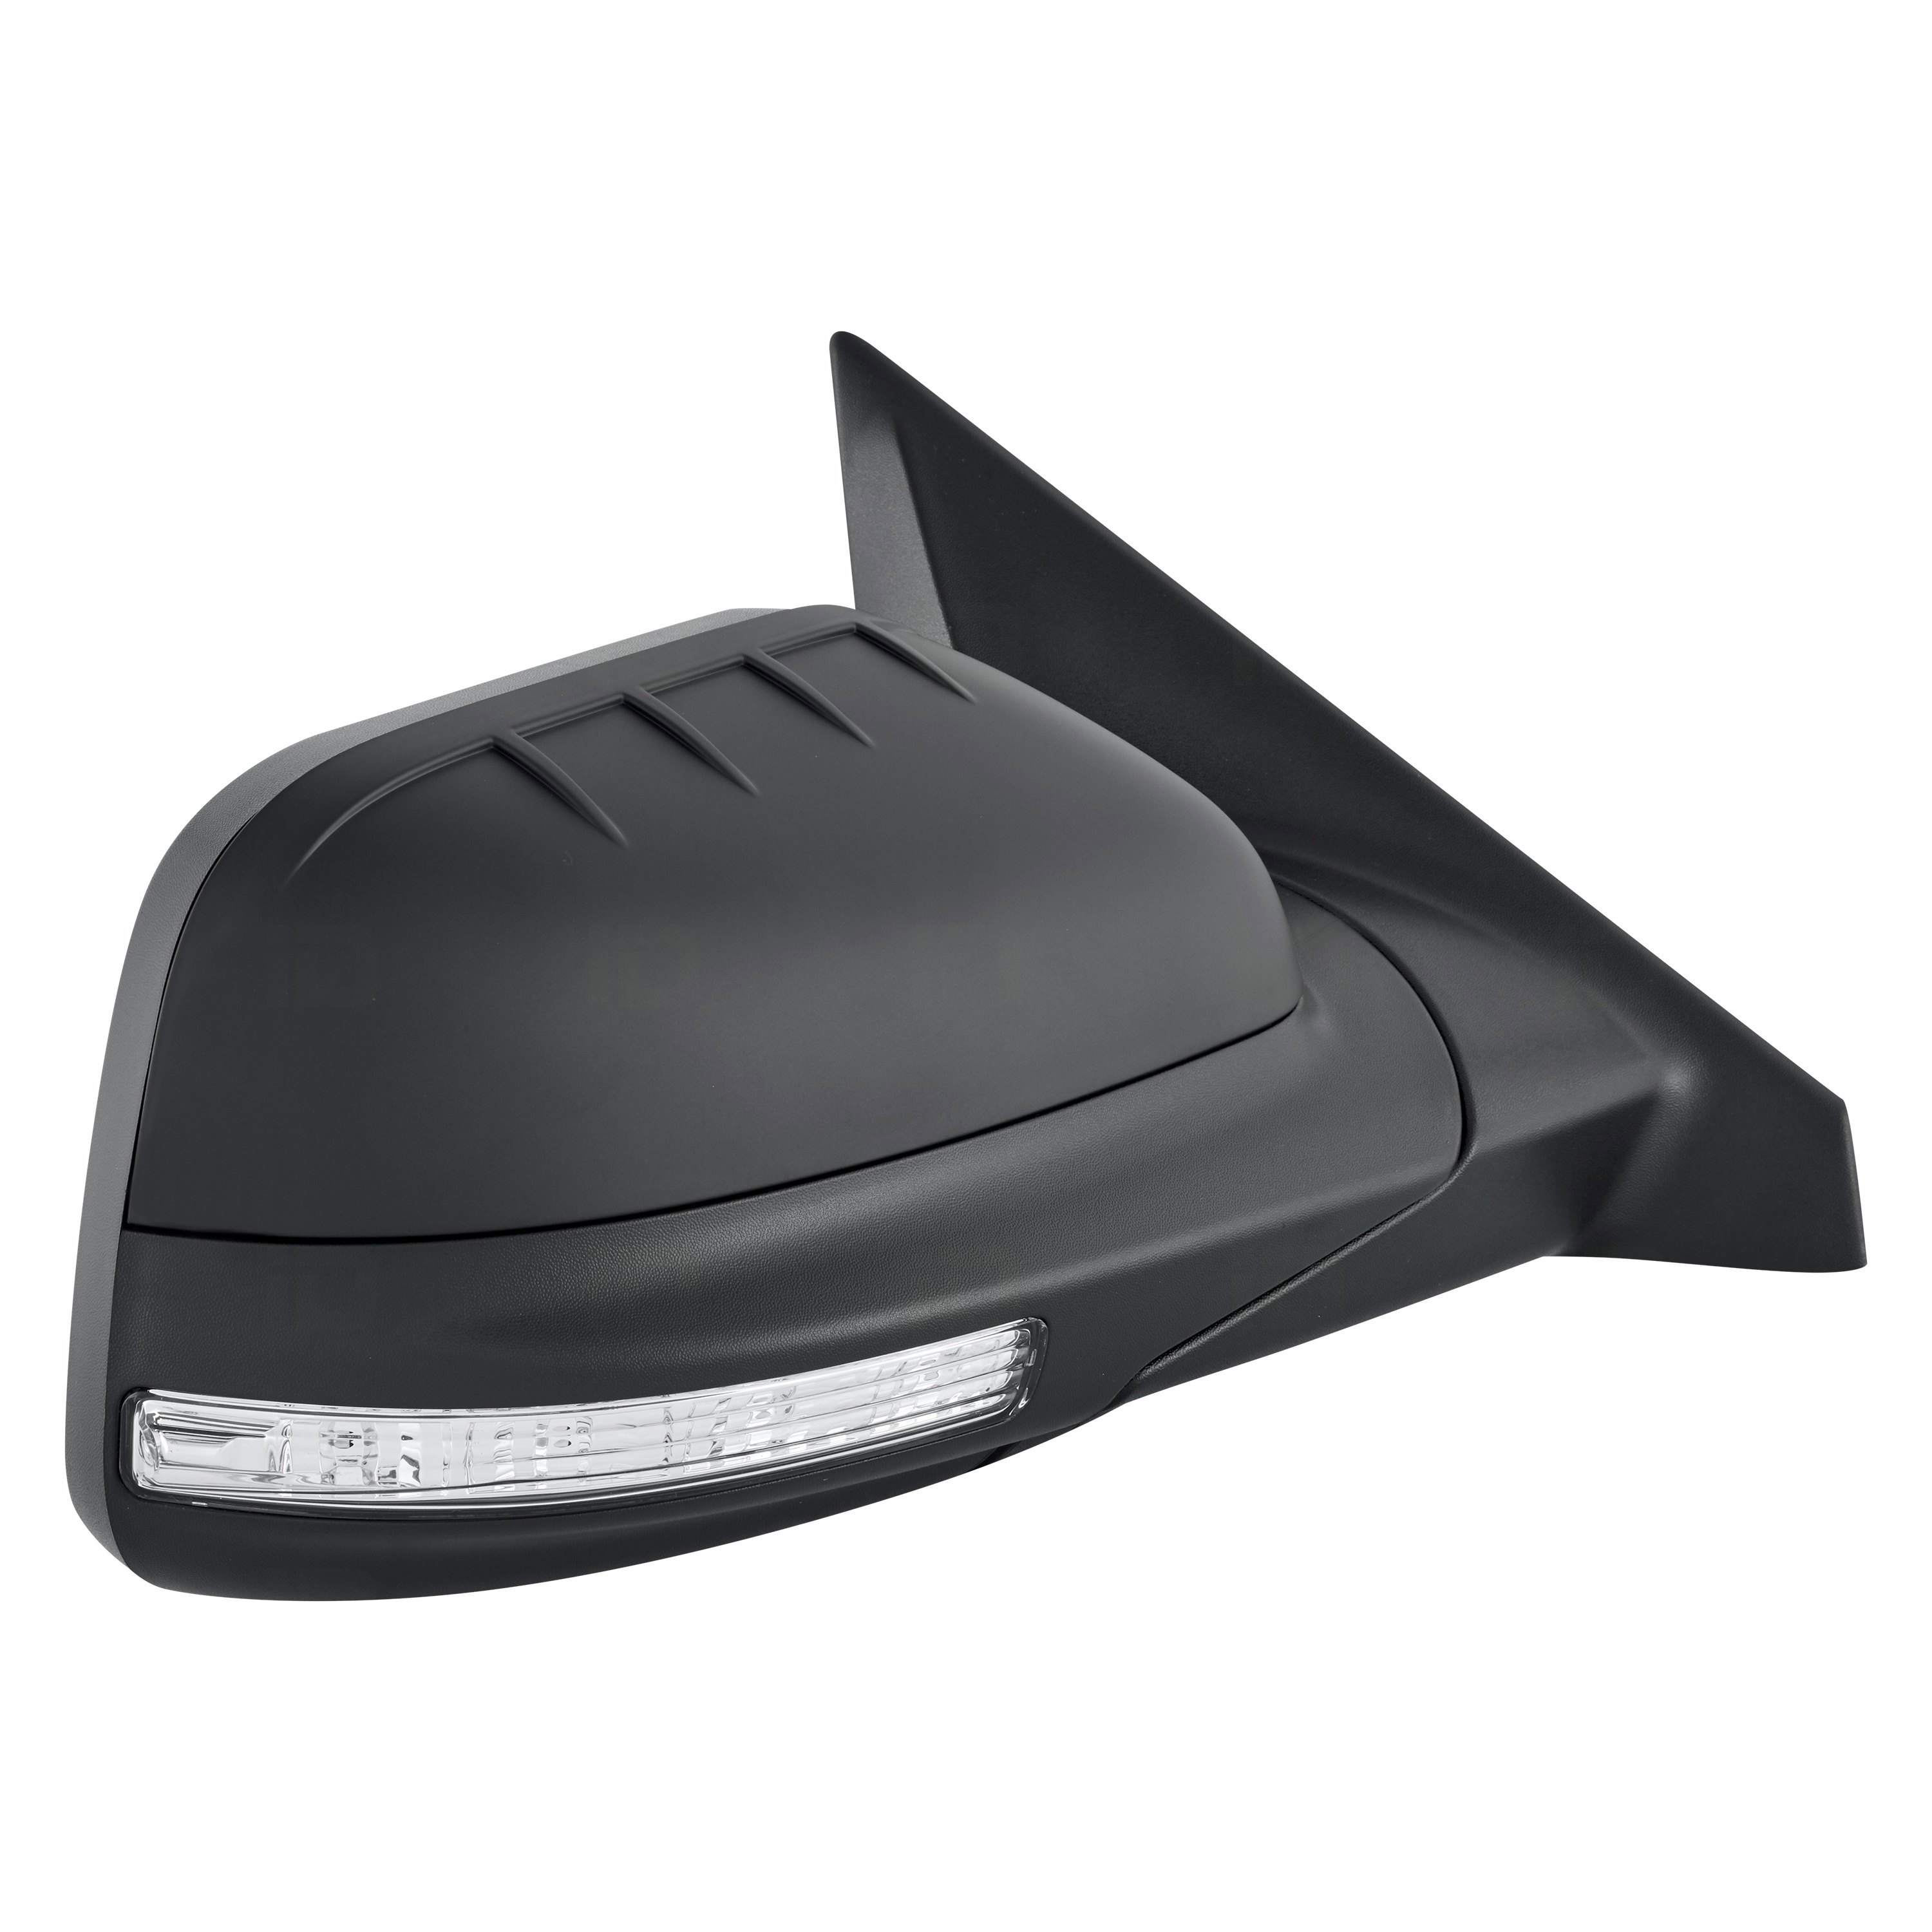 11 Possible Replacements On The View: For Ford Explorer 11-15 Passenger Side Power View Mirror